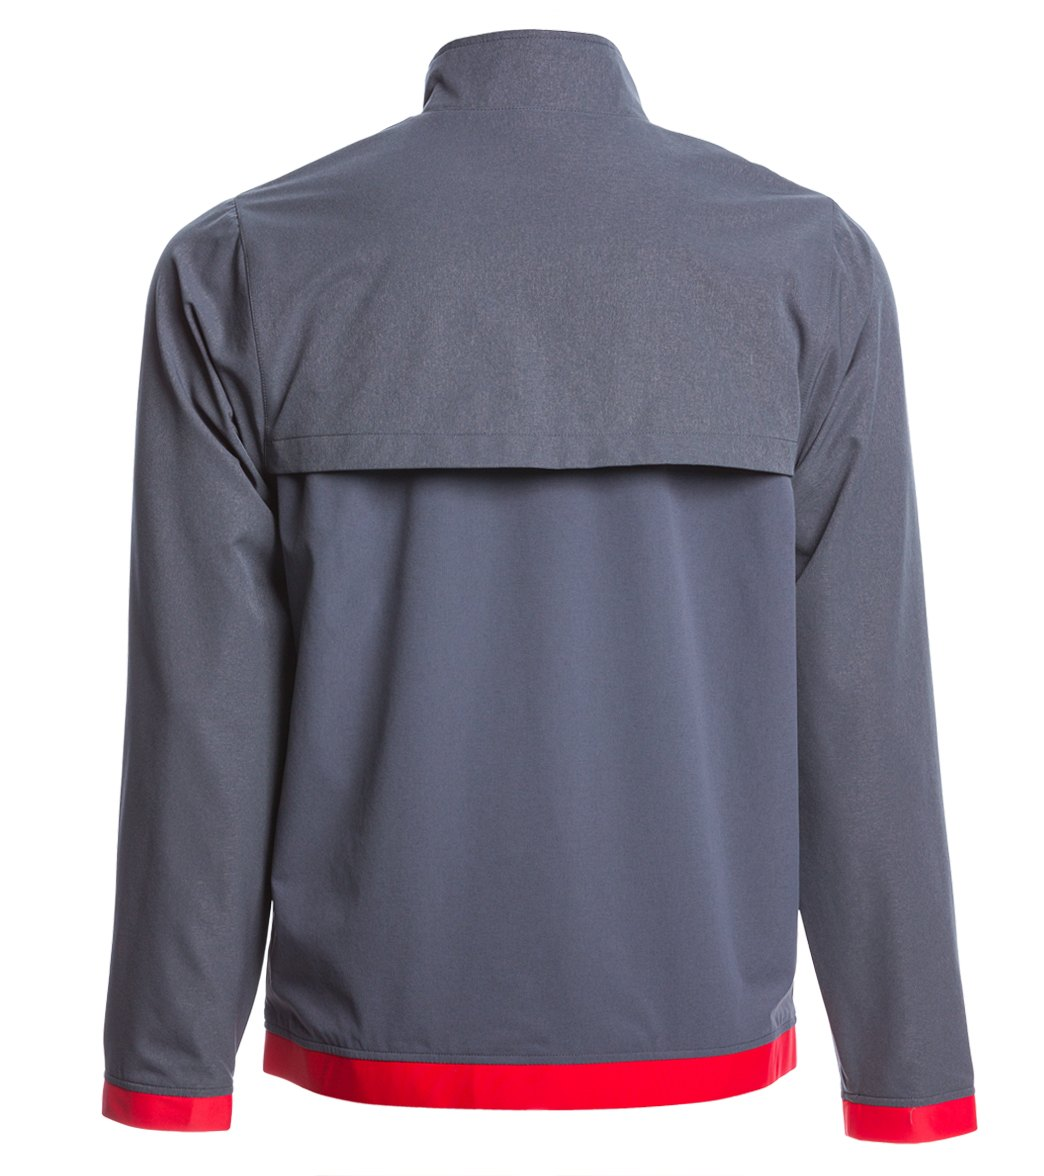 Free Jacket Speedo Men's Up Warm Shipping At Tech Csdthqrxb xeQWrodBCE